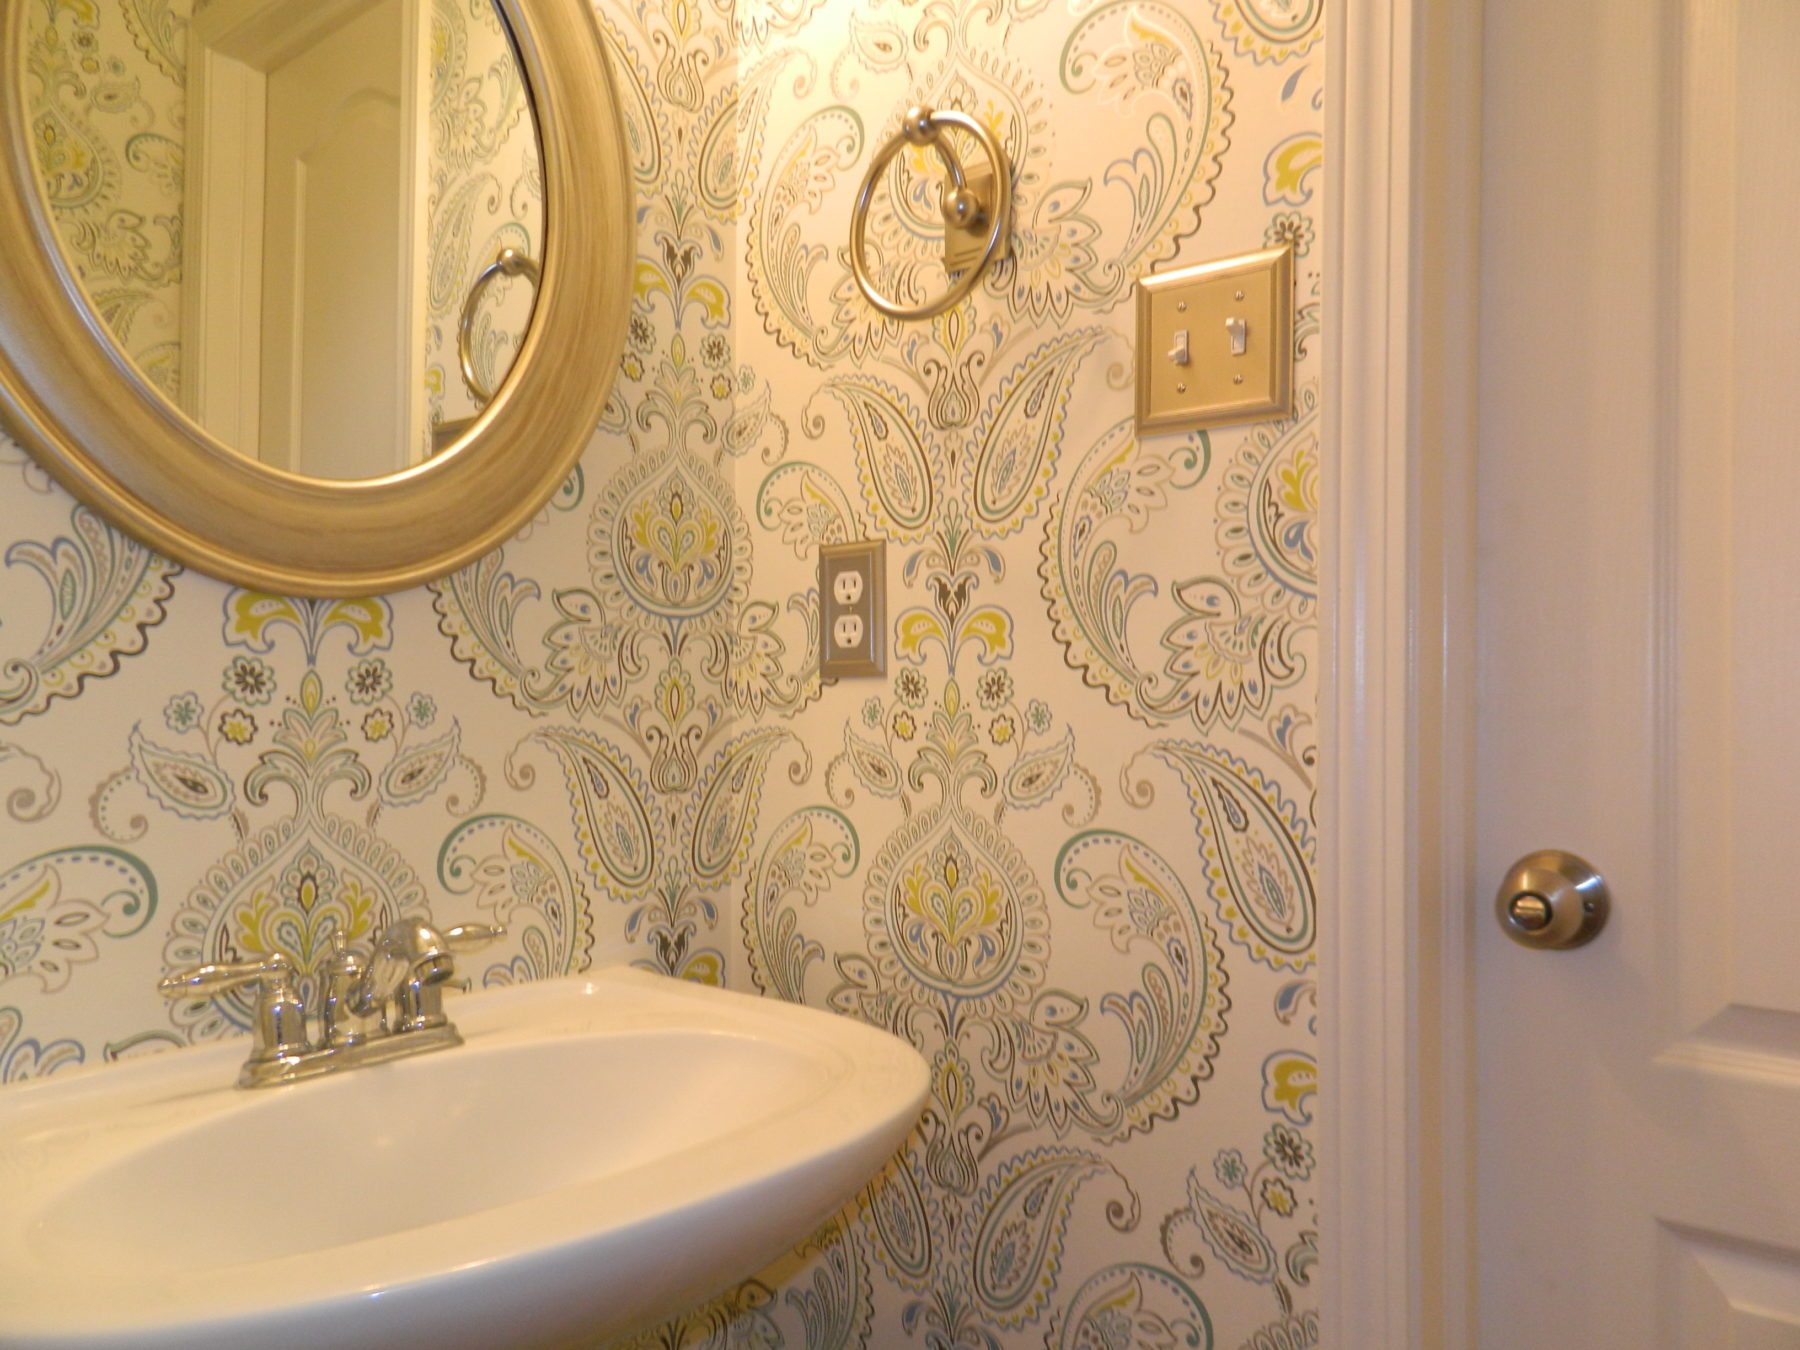 Wall Covering Service : Wall covering archives ewc home services